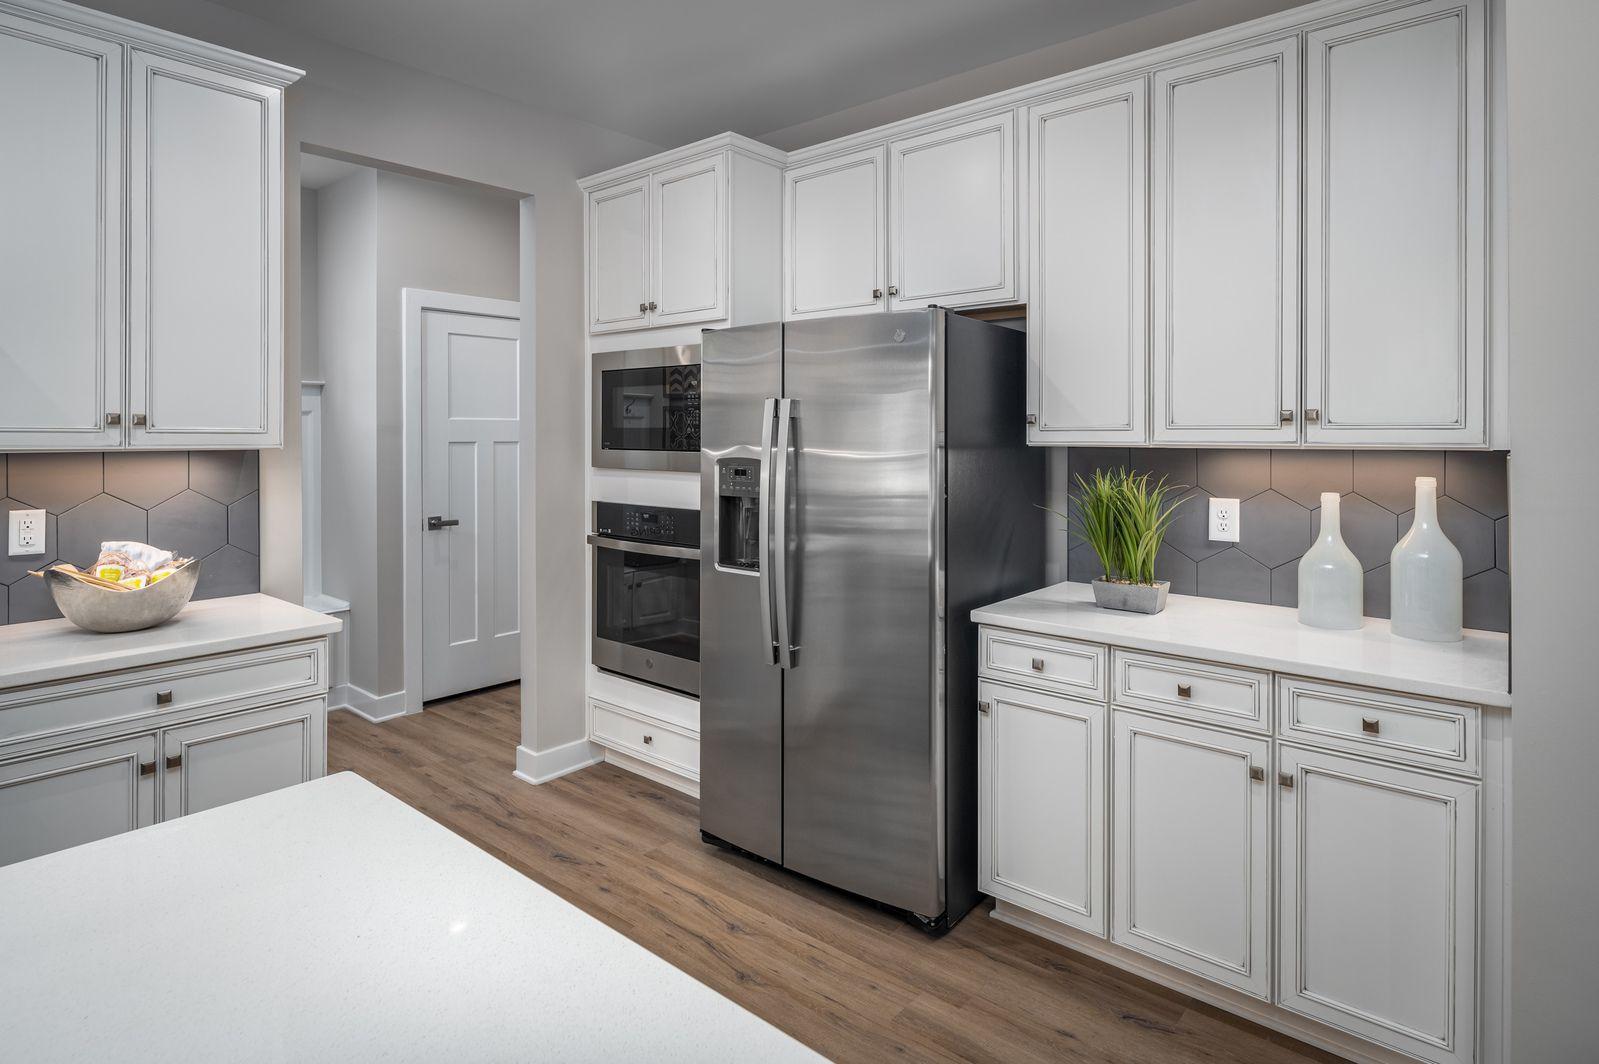 Kitchen featured in the Seneca (Included Finished Basement) By Ryan Homes in Cincinnati, OH